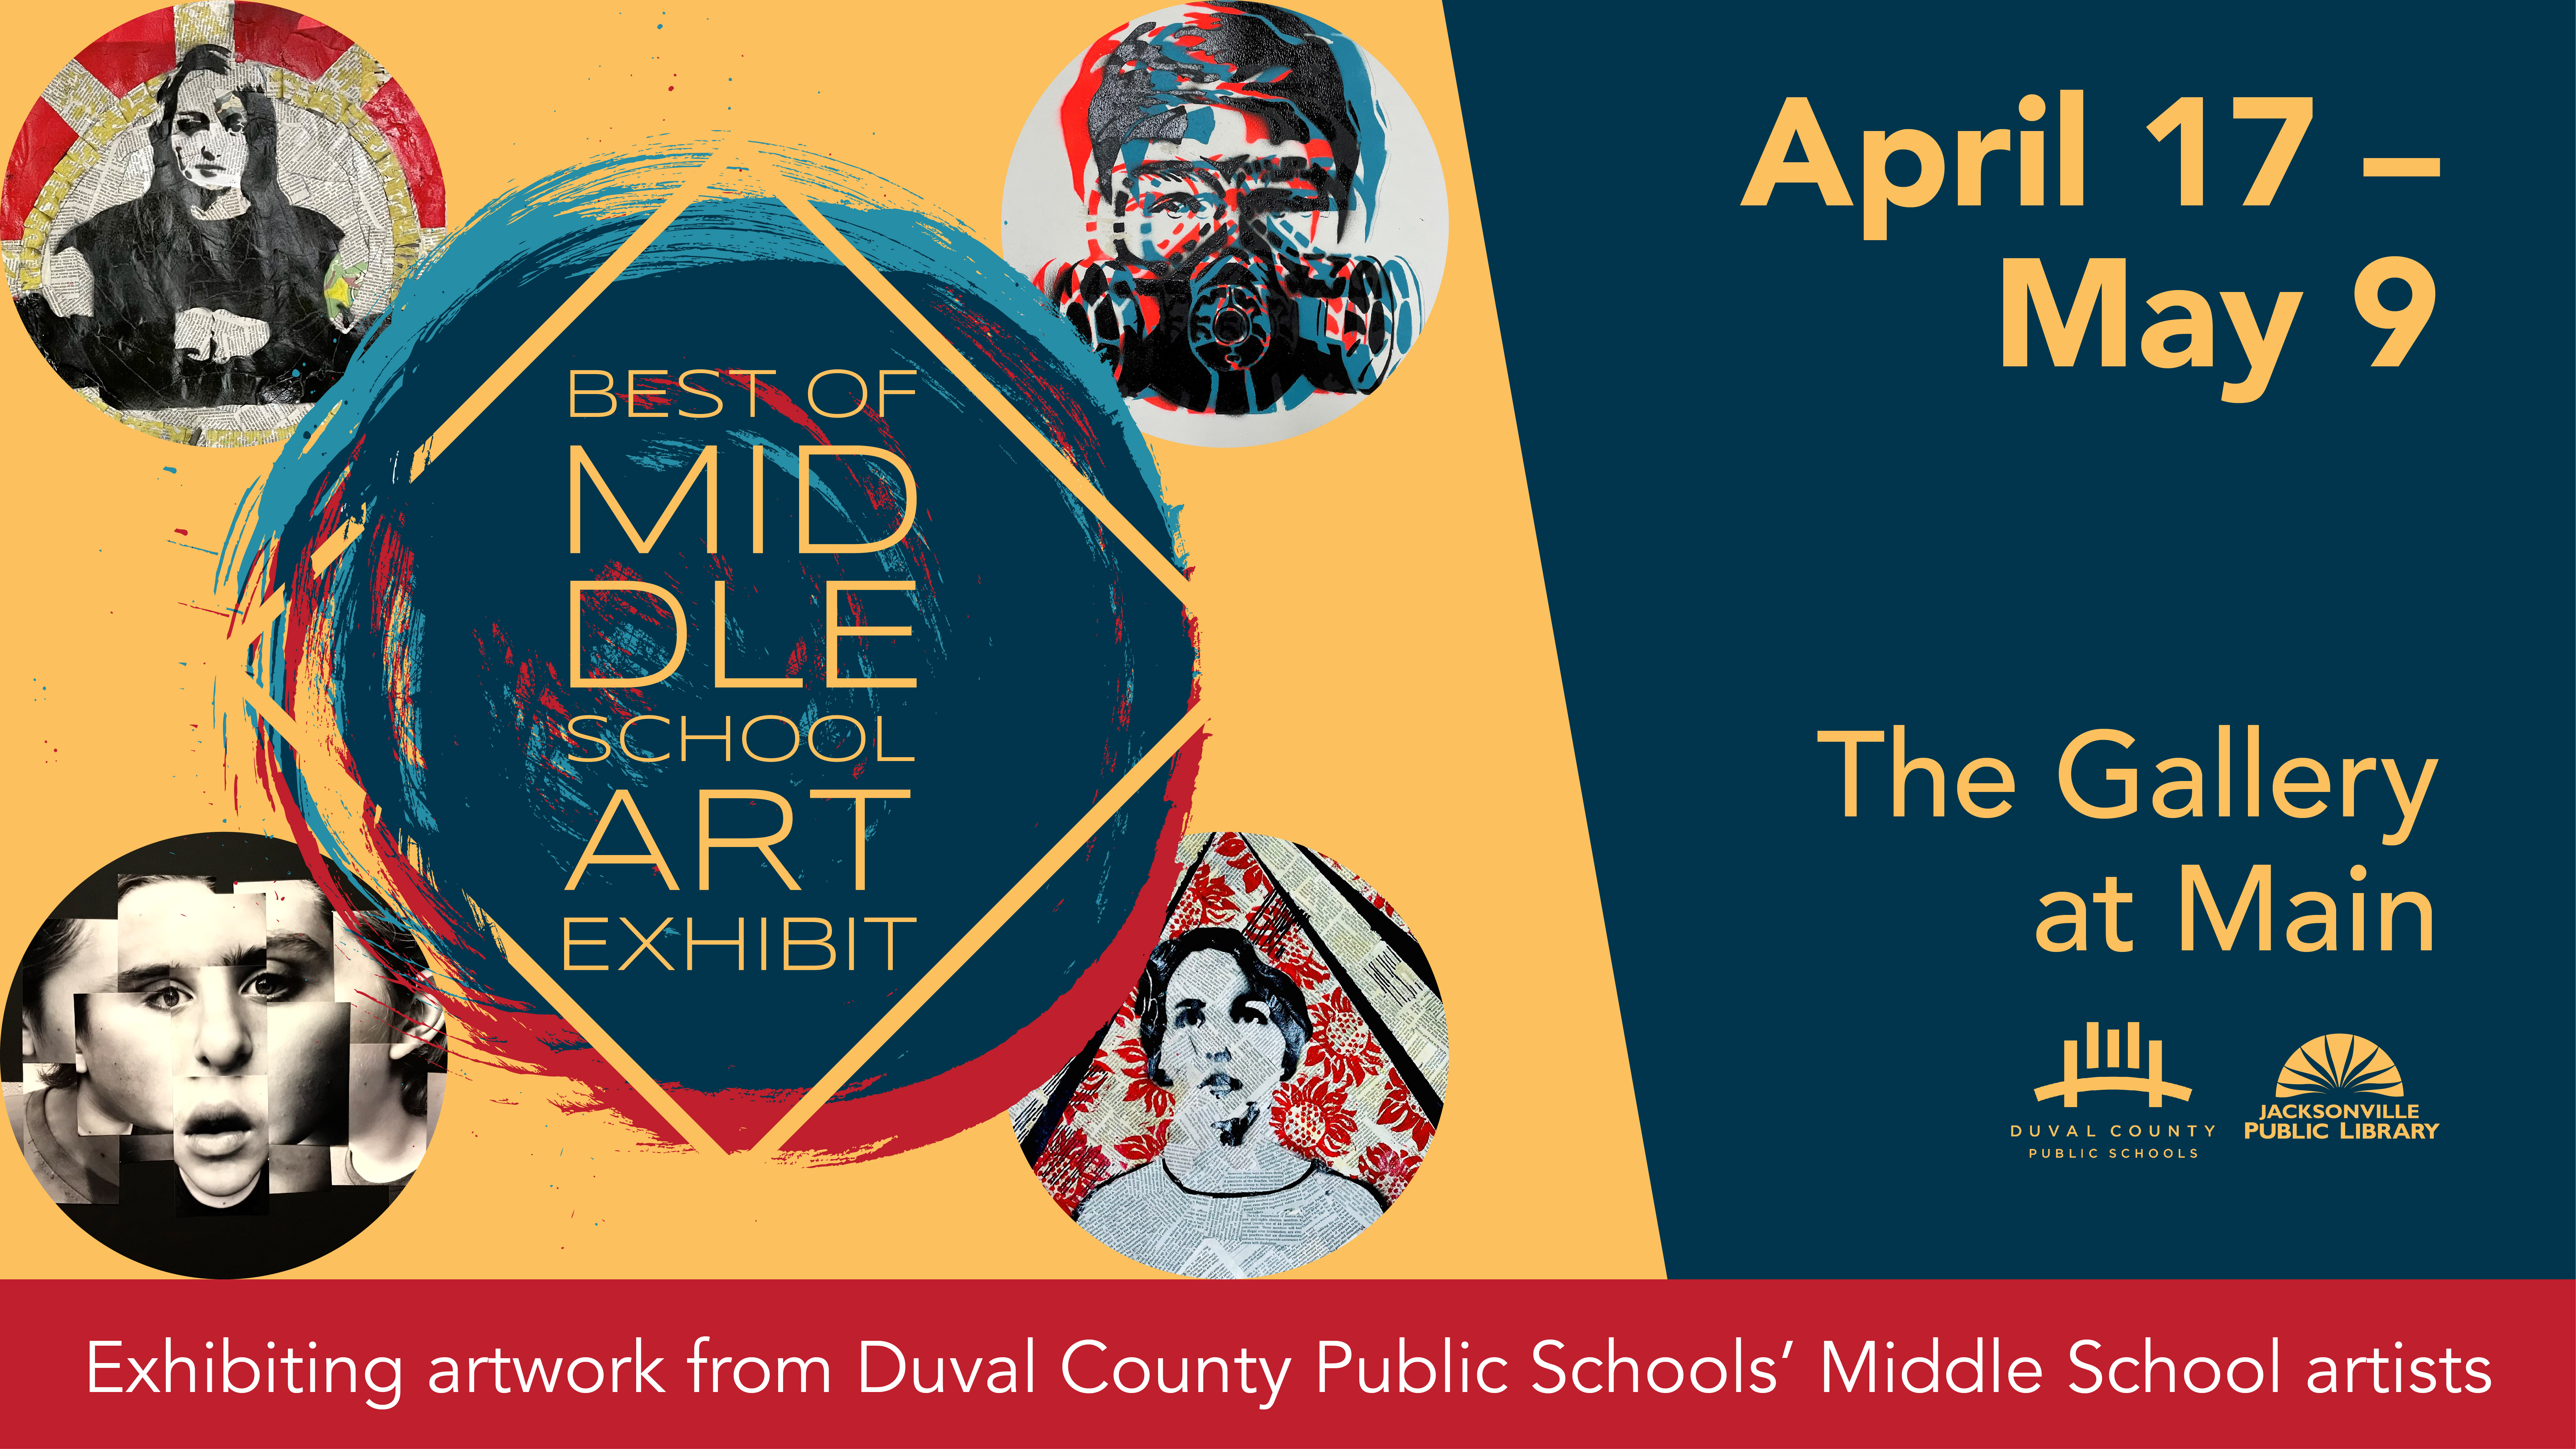 The Best of Middle School Art Exhibit April 17 through May 9 in the Gallery at Main